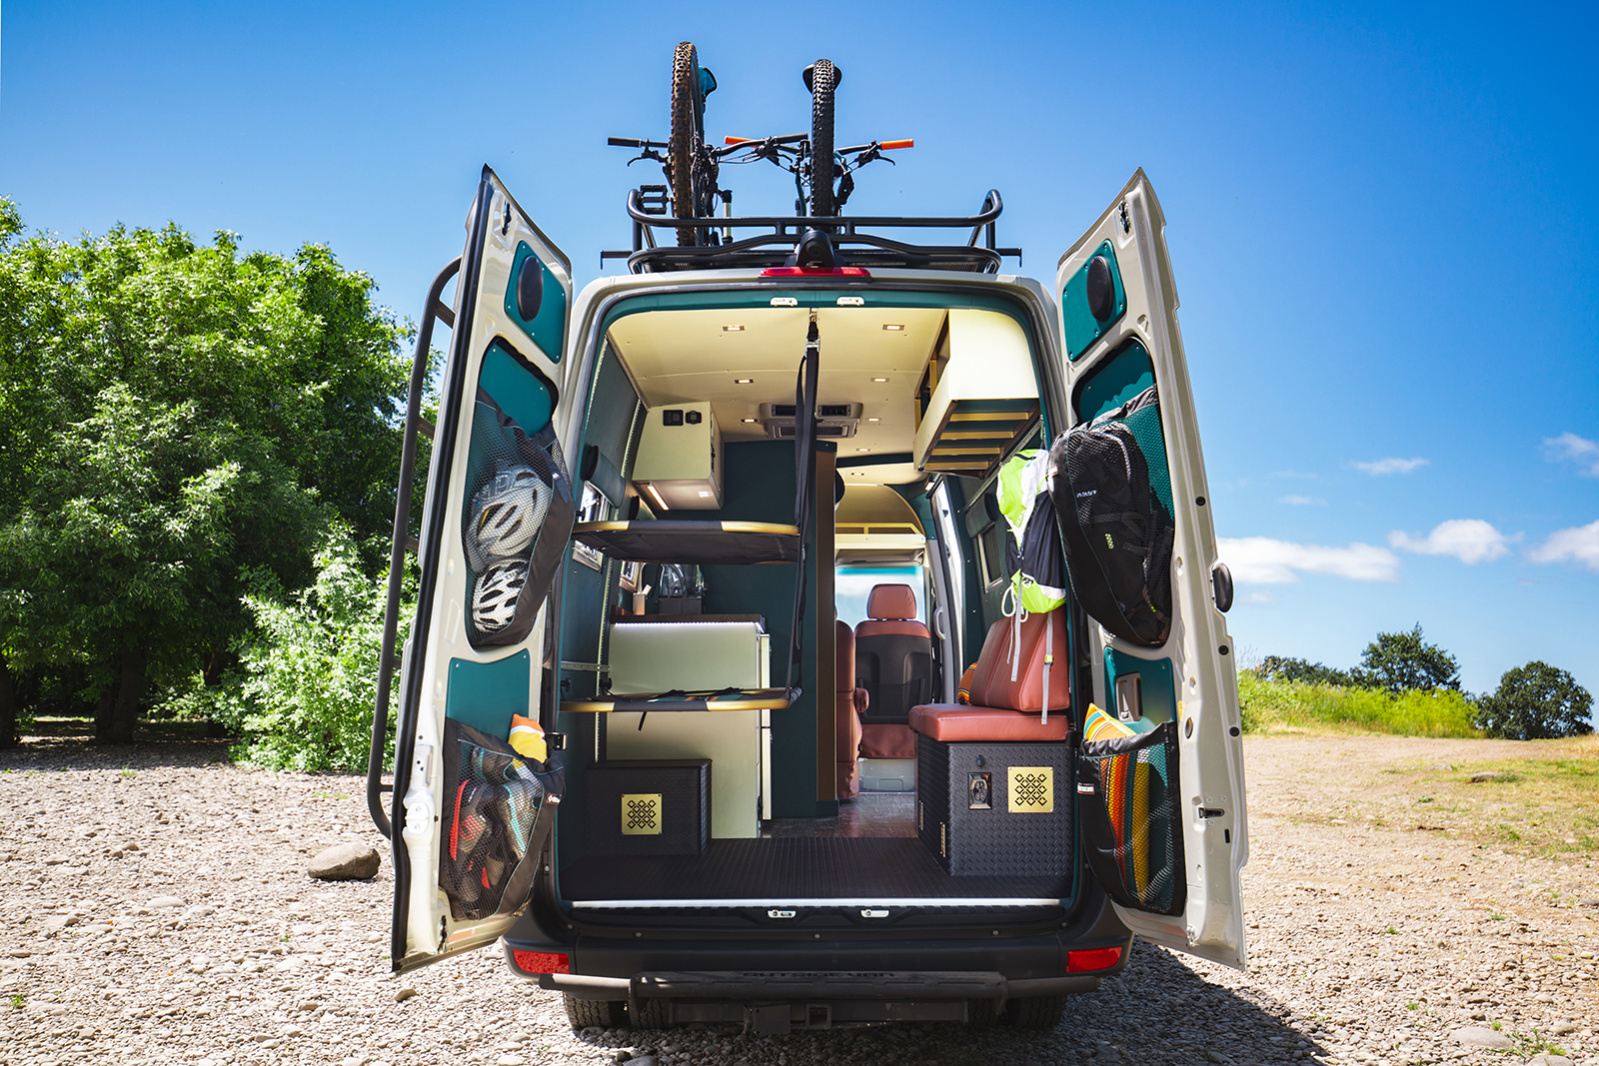 Next Gen off-grid camper van drops weight with ultralight cots and components